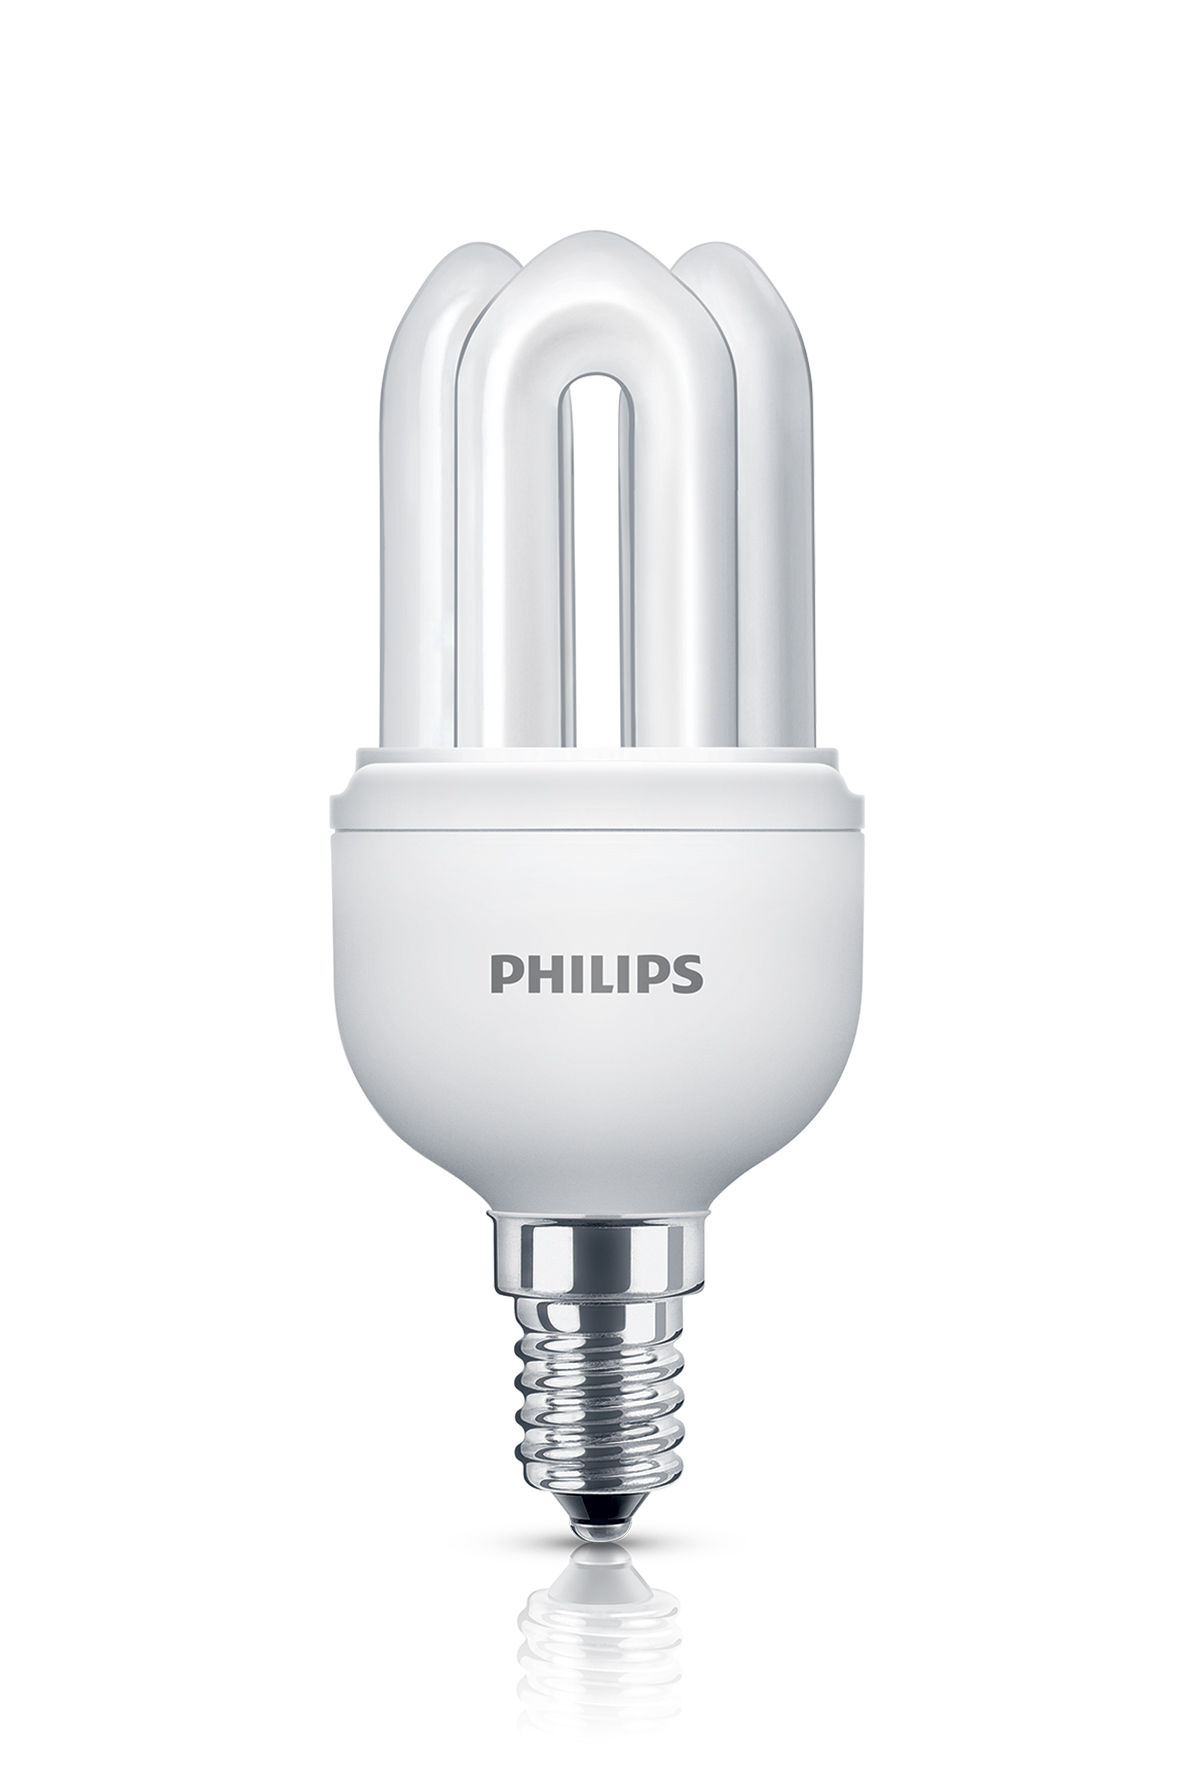 genie fluocompact bulb e14 11w 50w 600 lumen 11w 50w by philips. Black Bedroom Furniture Sets. Home Design Ideas